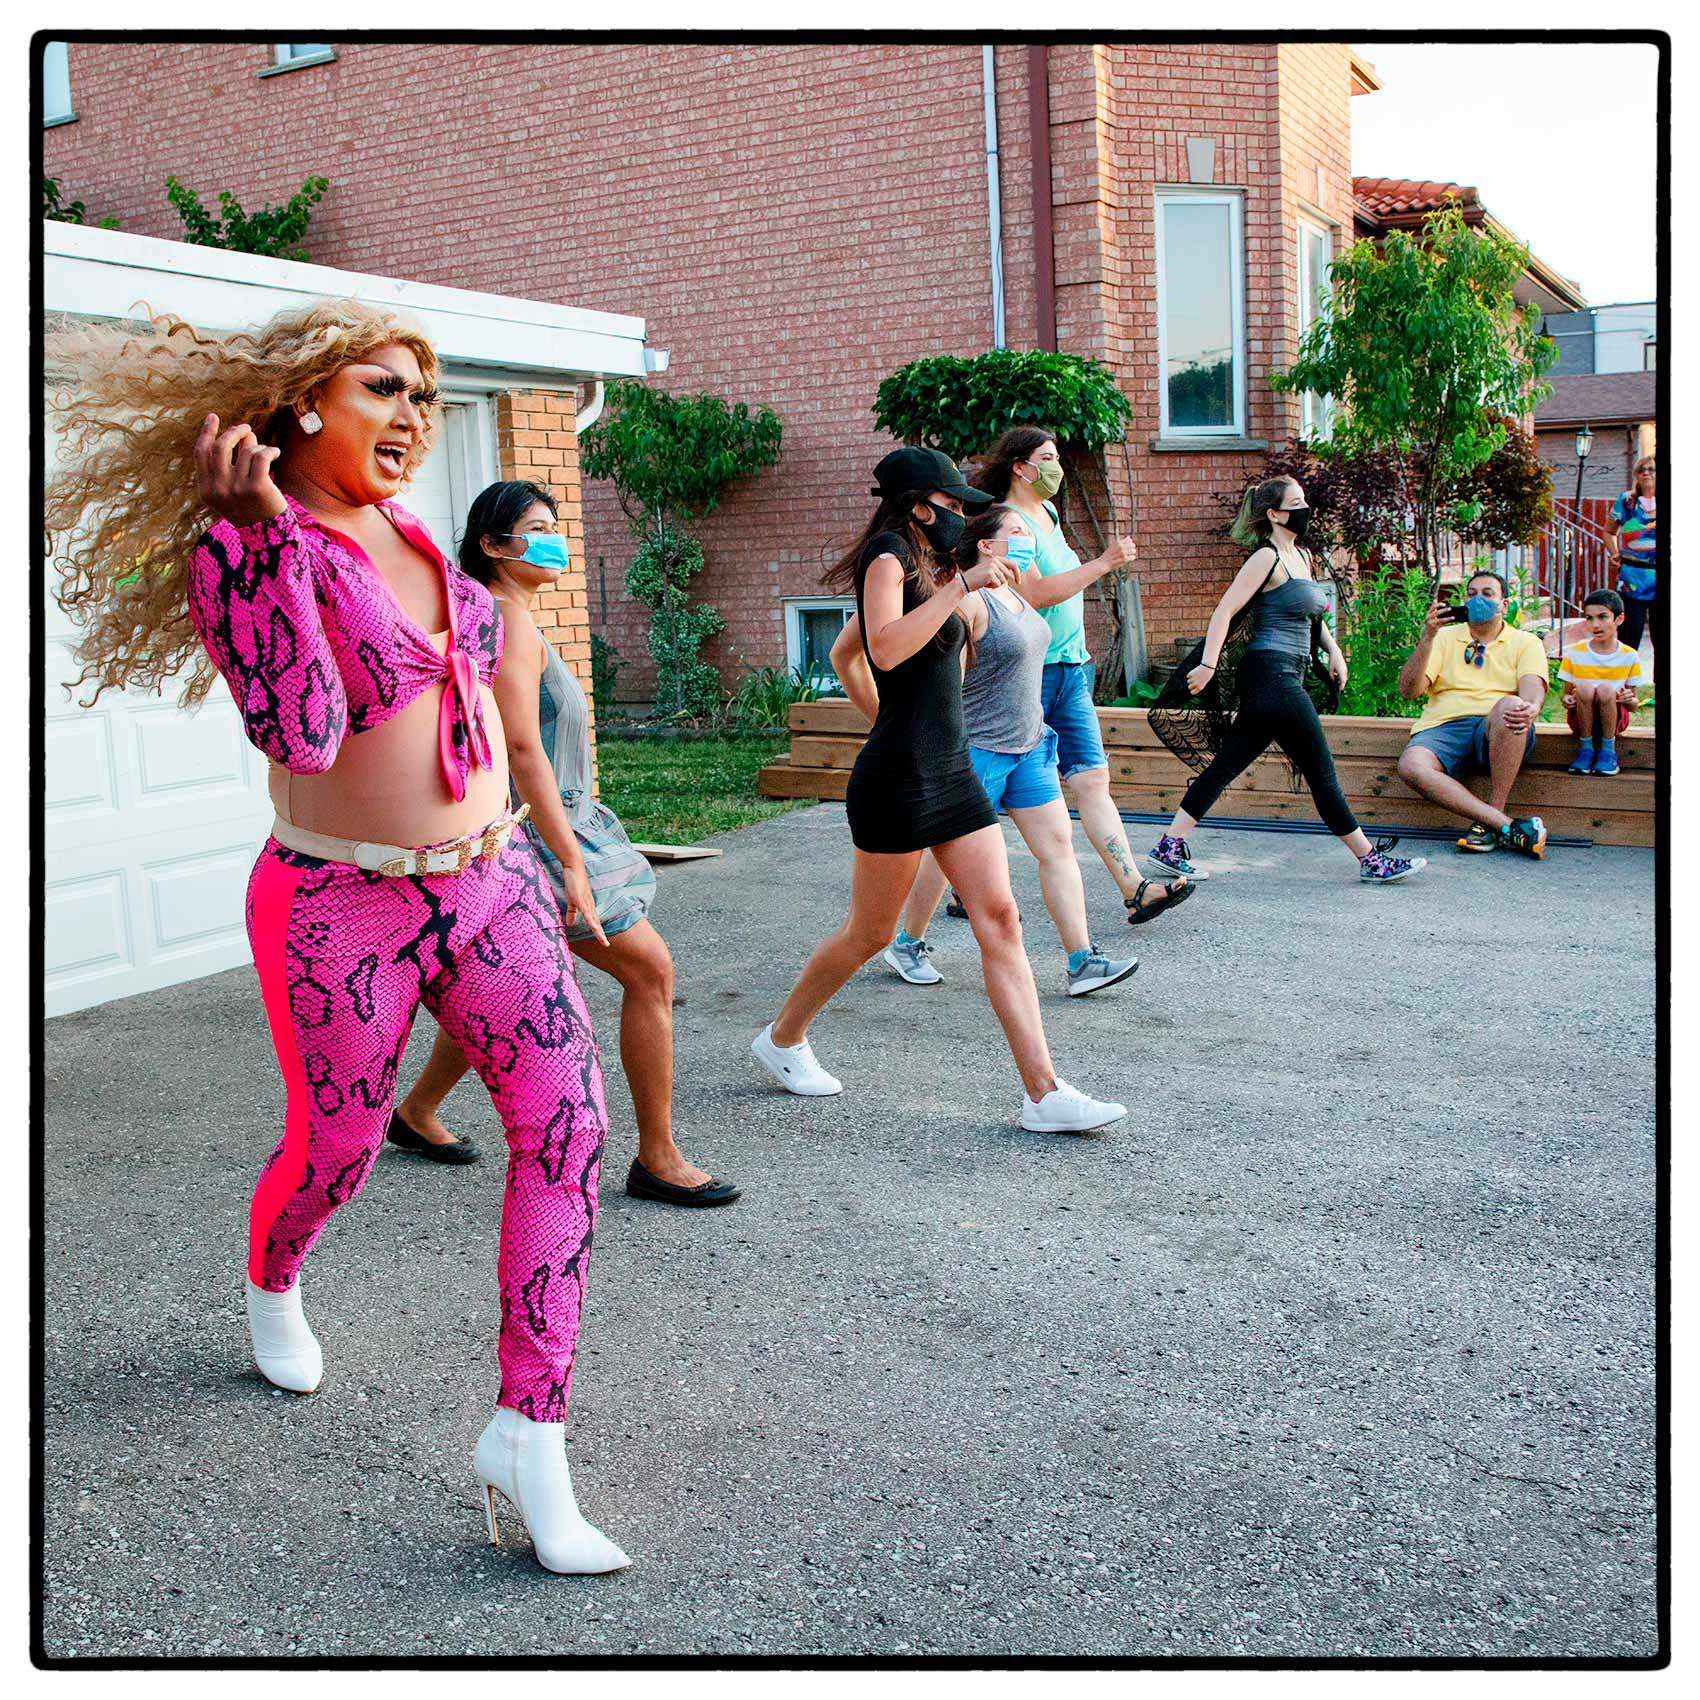 a drag queen dancing with woman on street during a suburban show in toronto